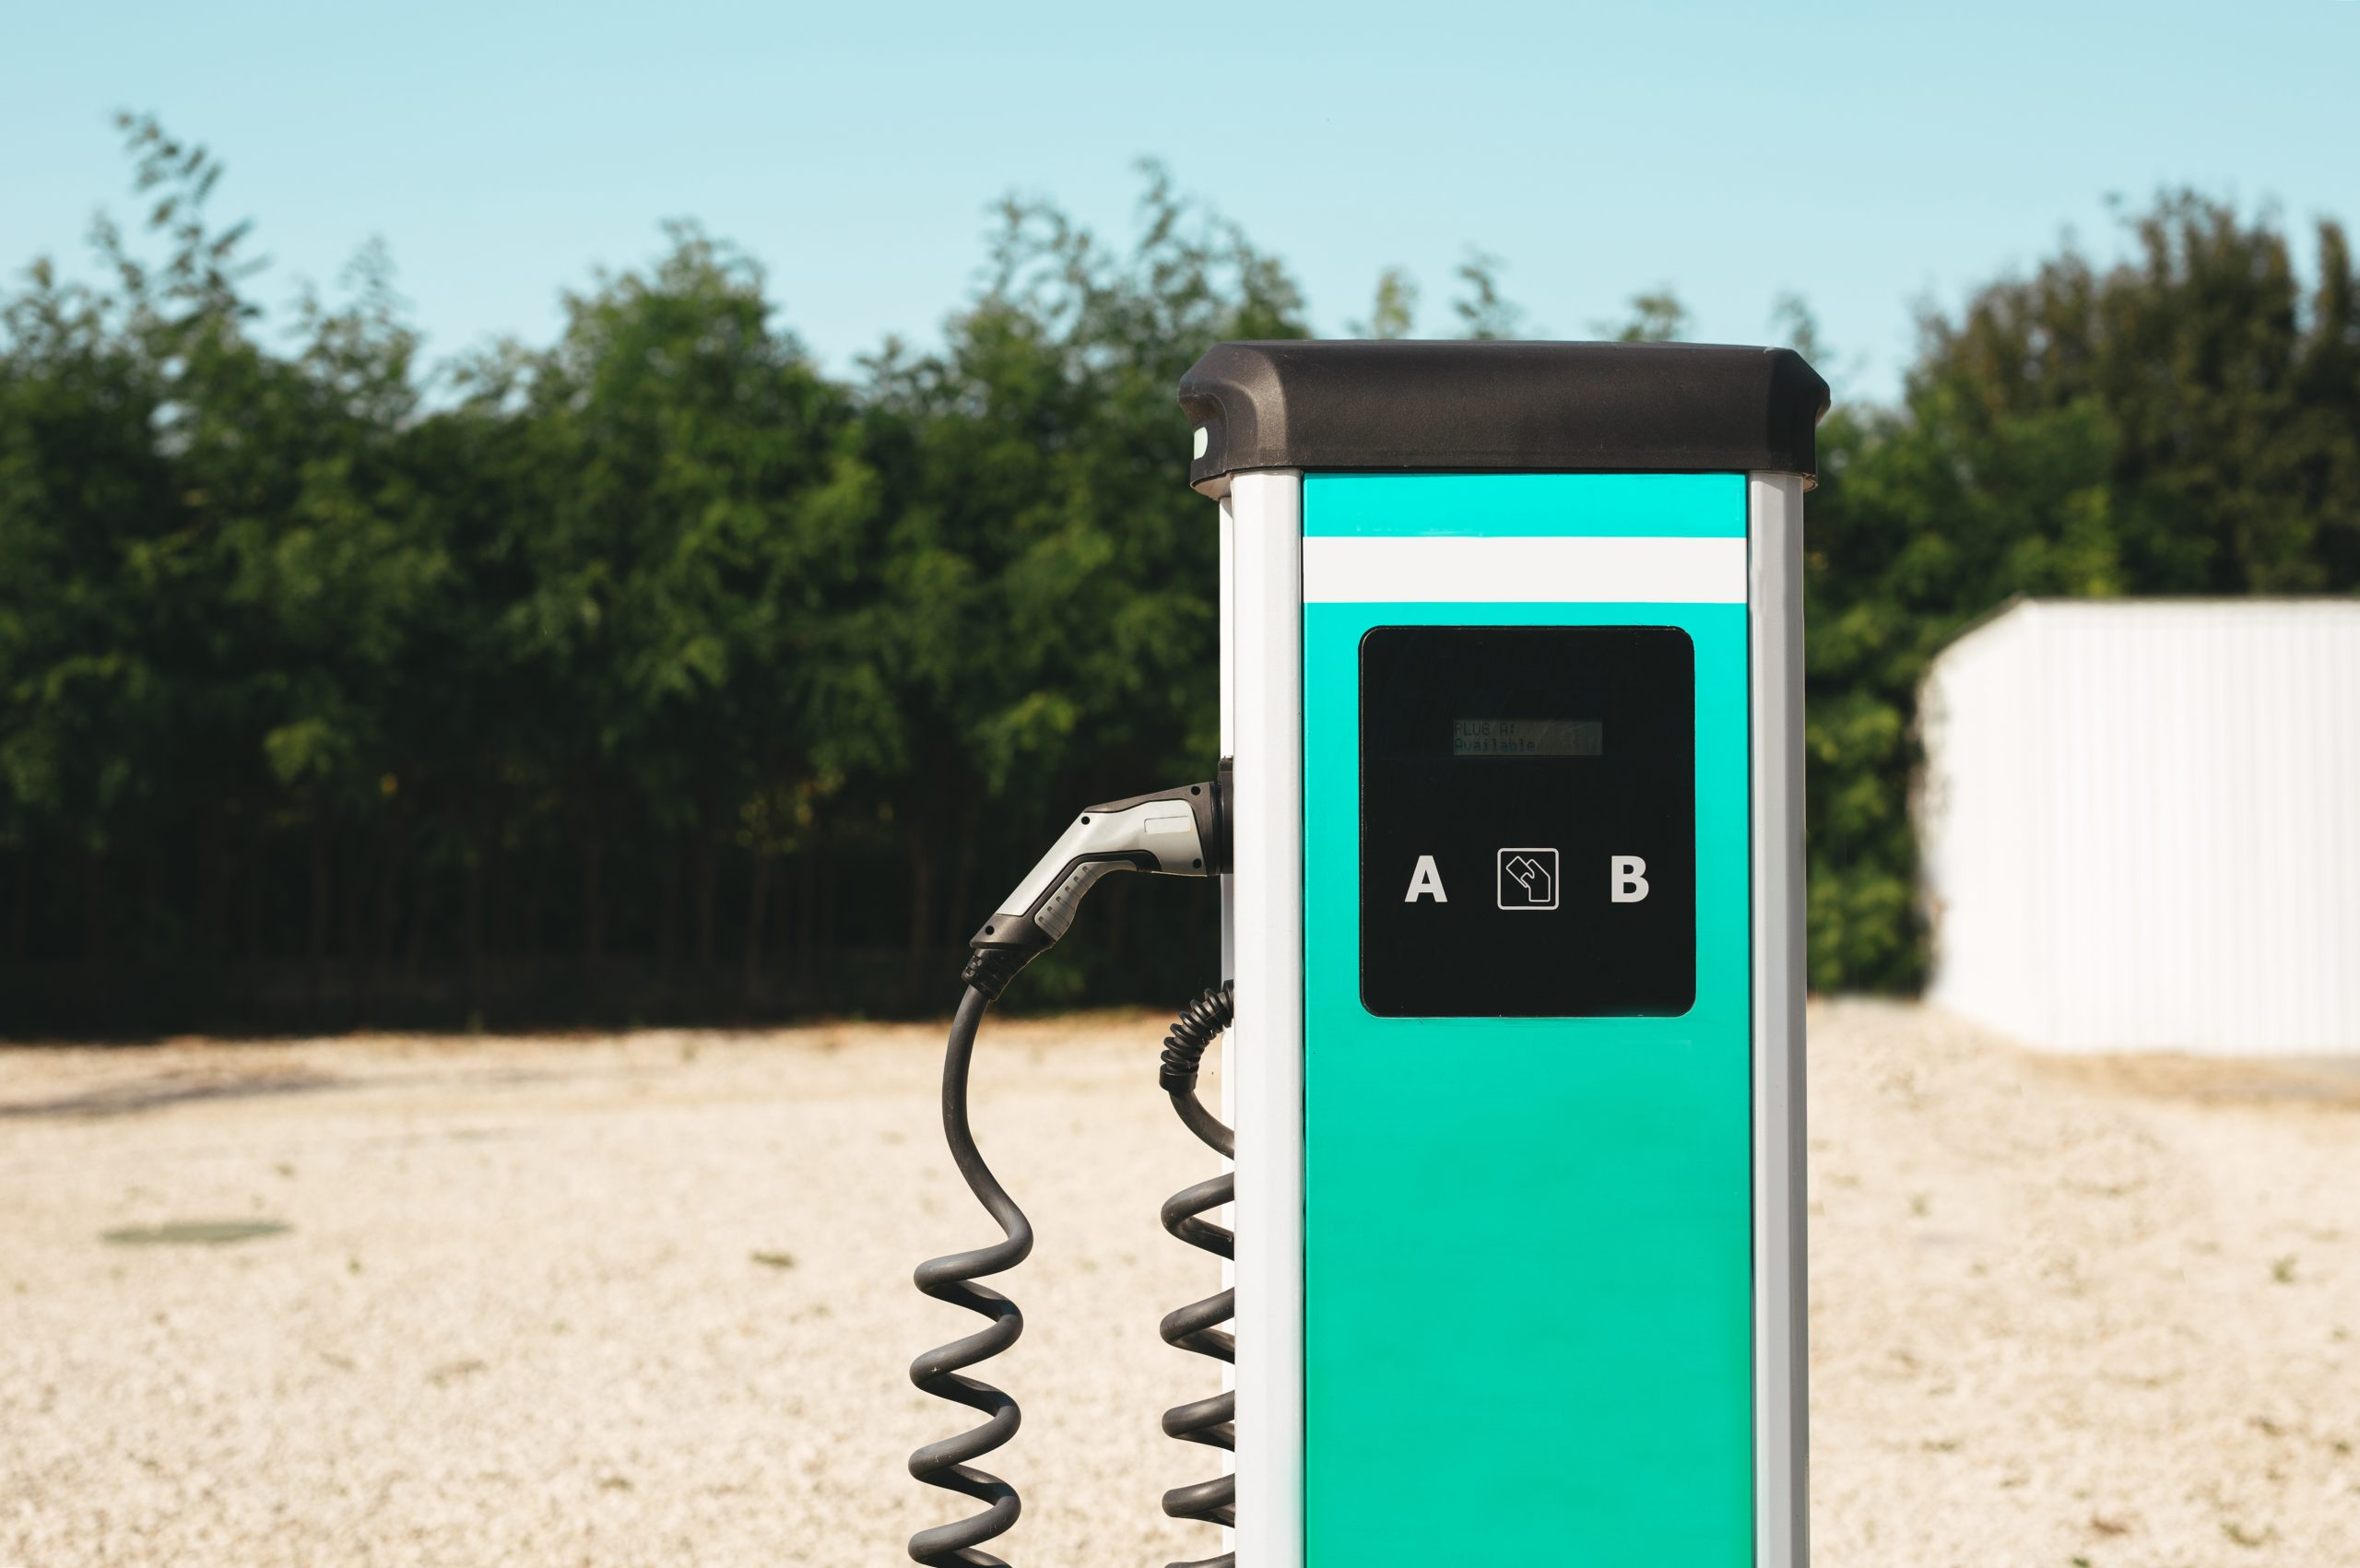 Qatar: First EV charger plant in region to begin production in Q3 of 2022